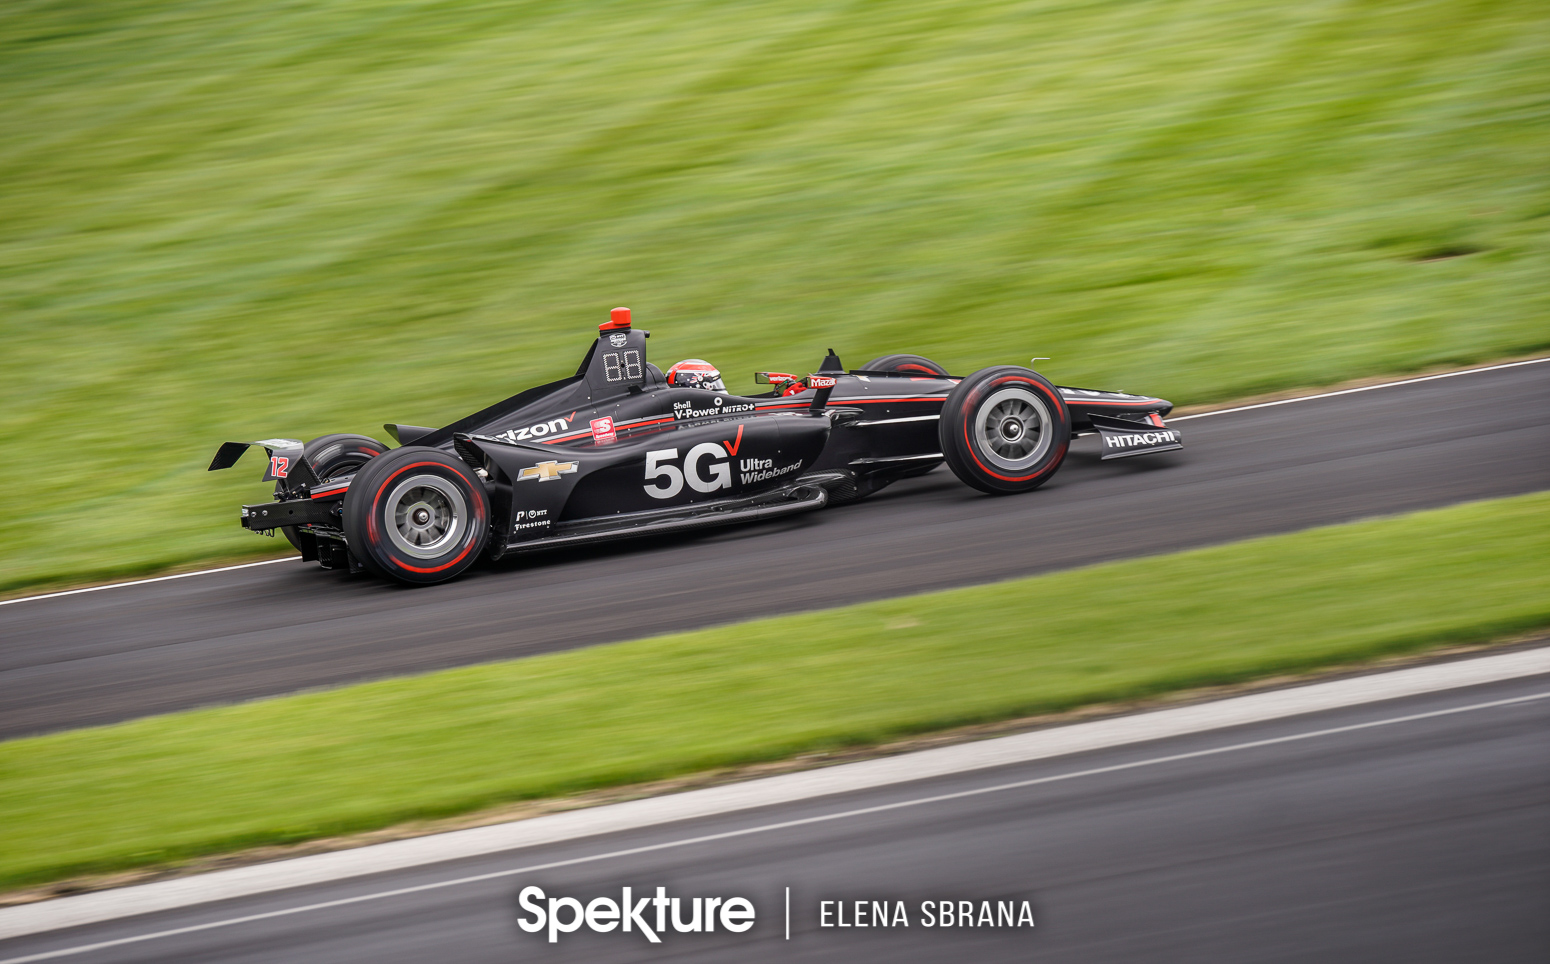 Earchphoto Sports - Will Power entering the oval